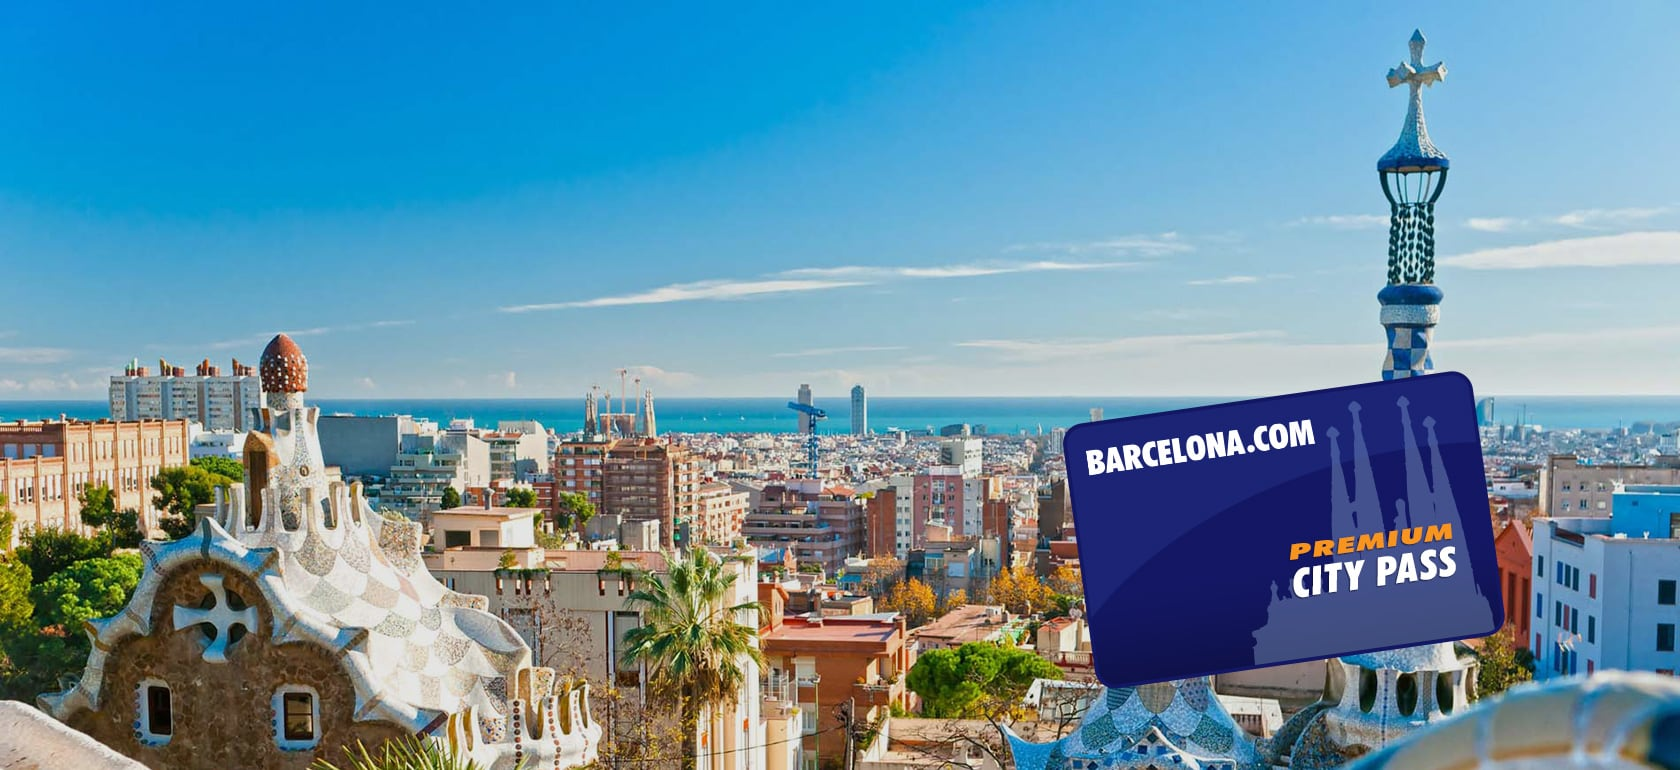 City Pass Barcellona - Premium